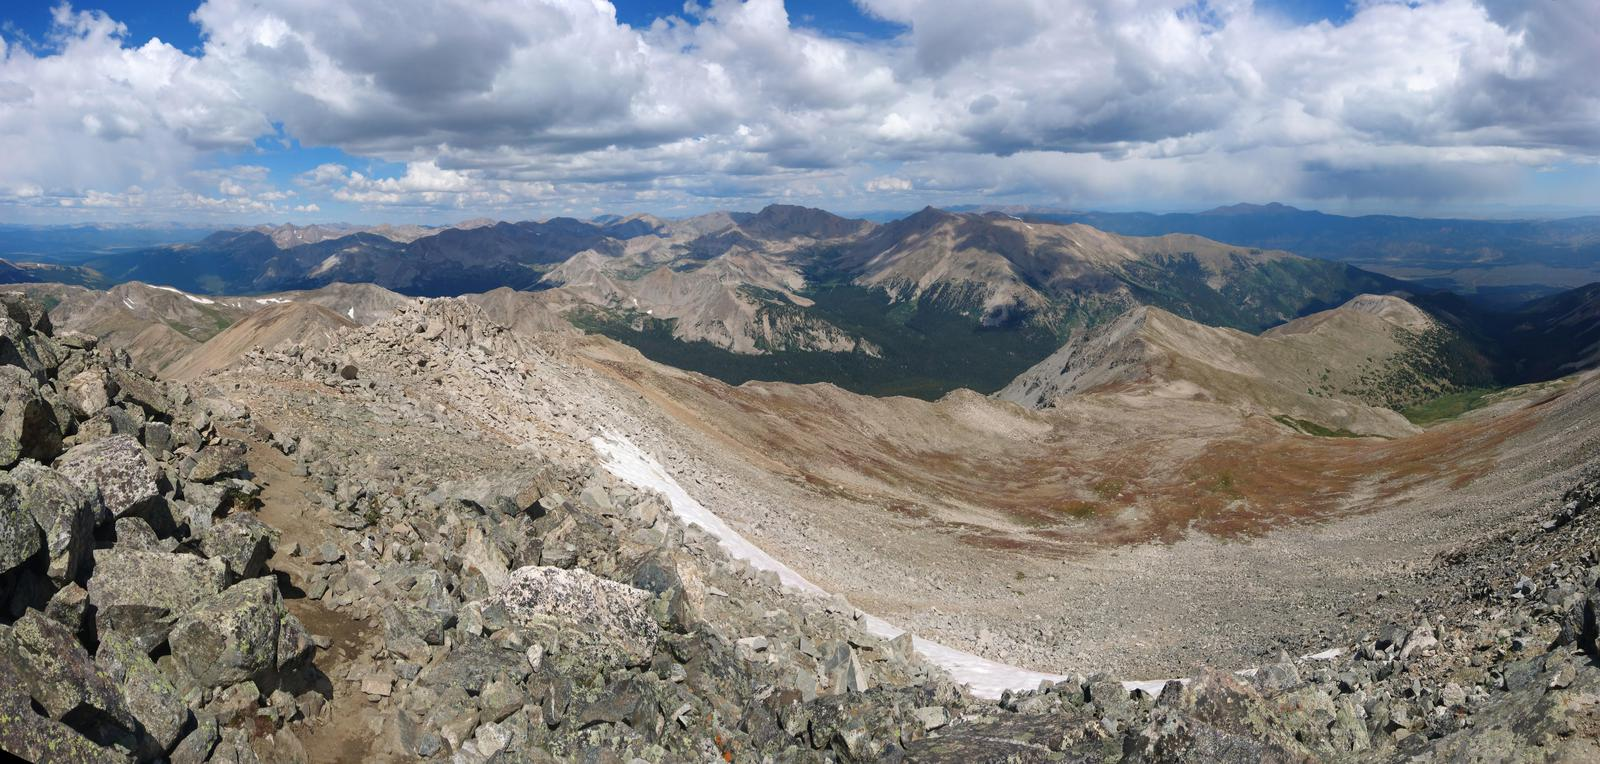 Panorama from the top of Mt. Yale